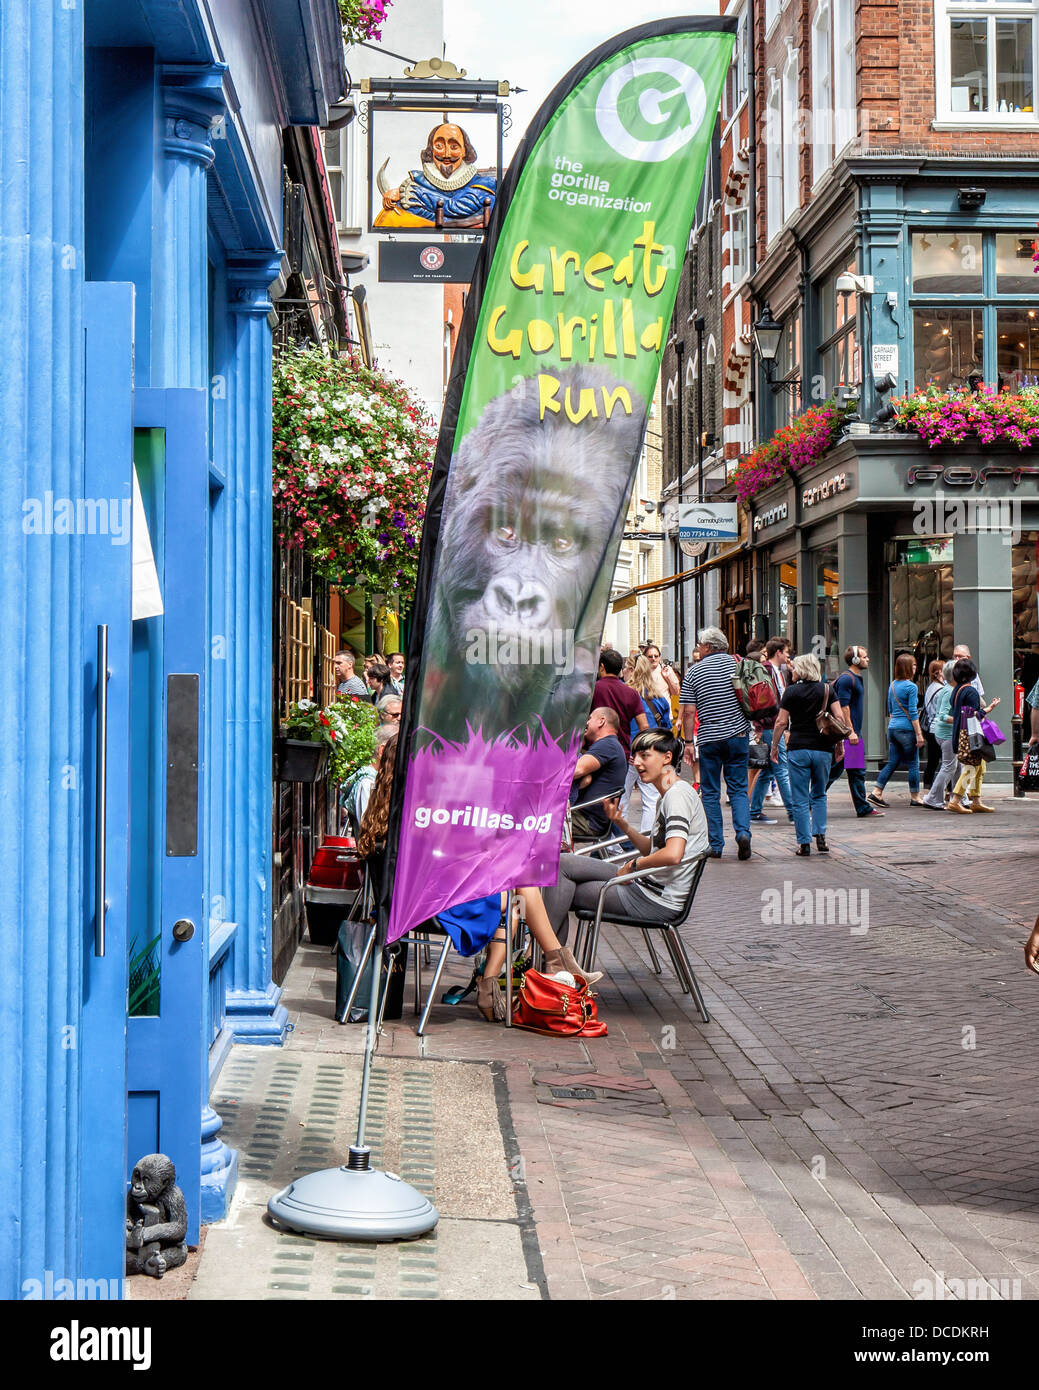 Gorillas.org - Pop-up ' save the gorilla' charity shop in Carnaby street, Soho, London - Stock Image